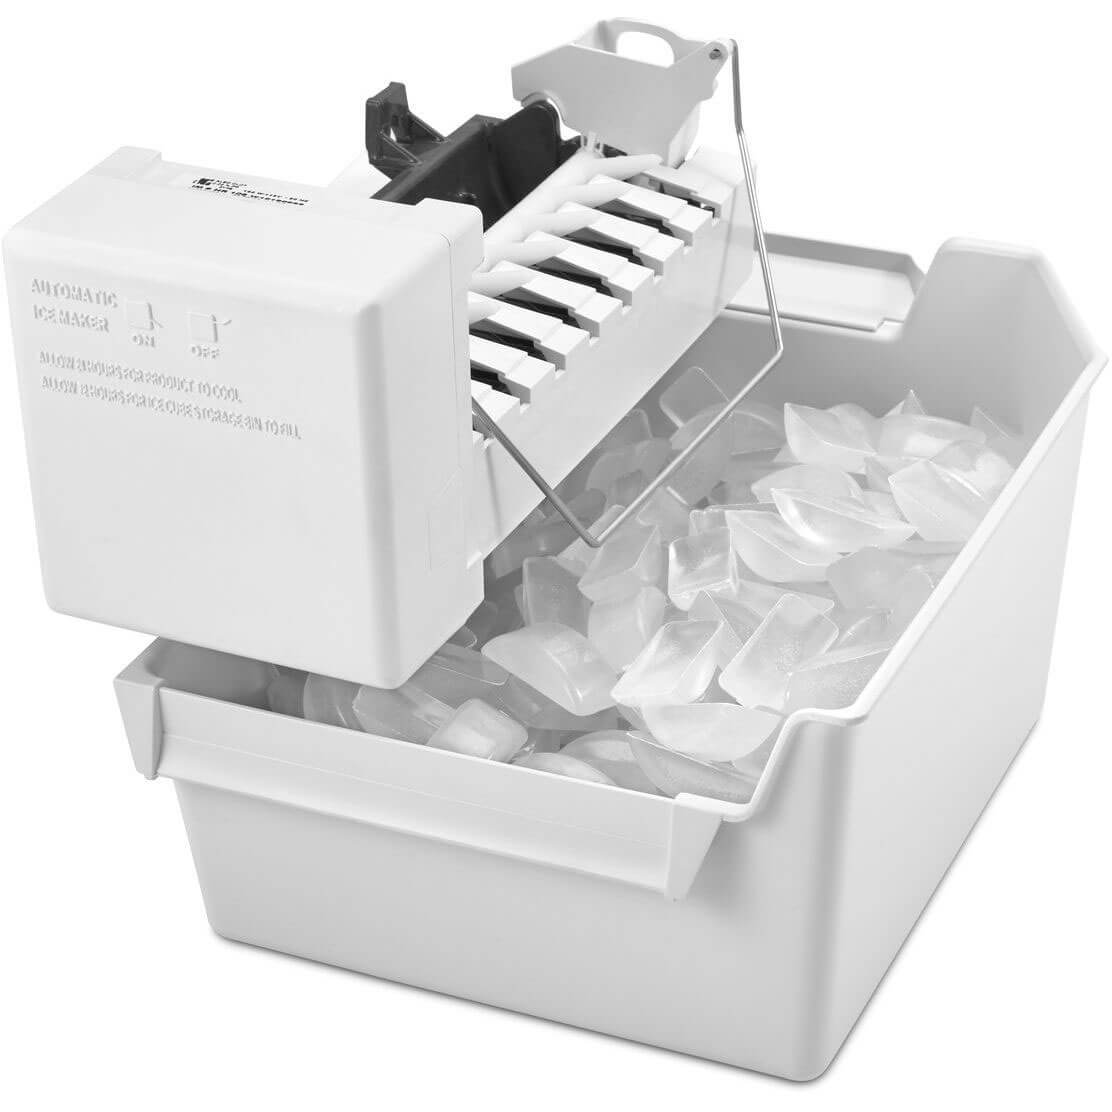 EZ Connect Ice Maker Kit